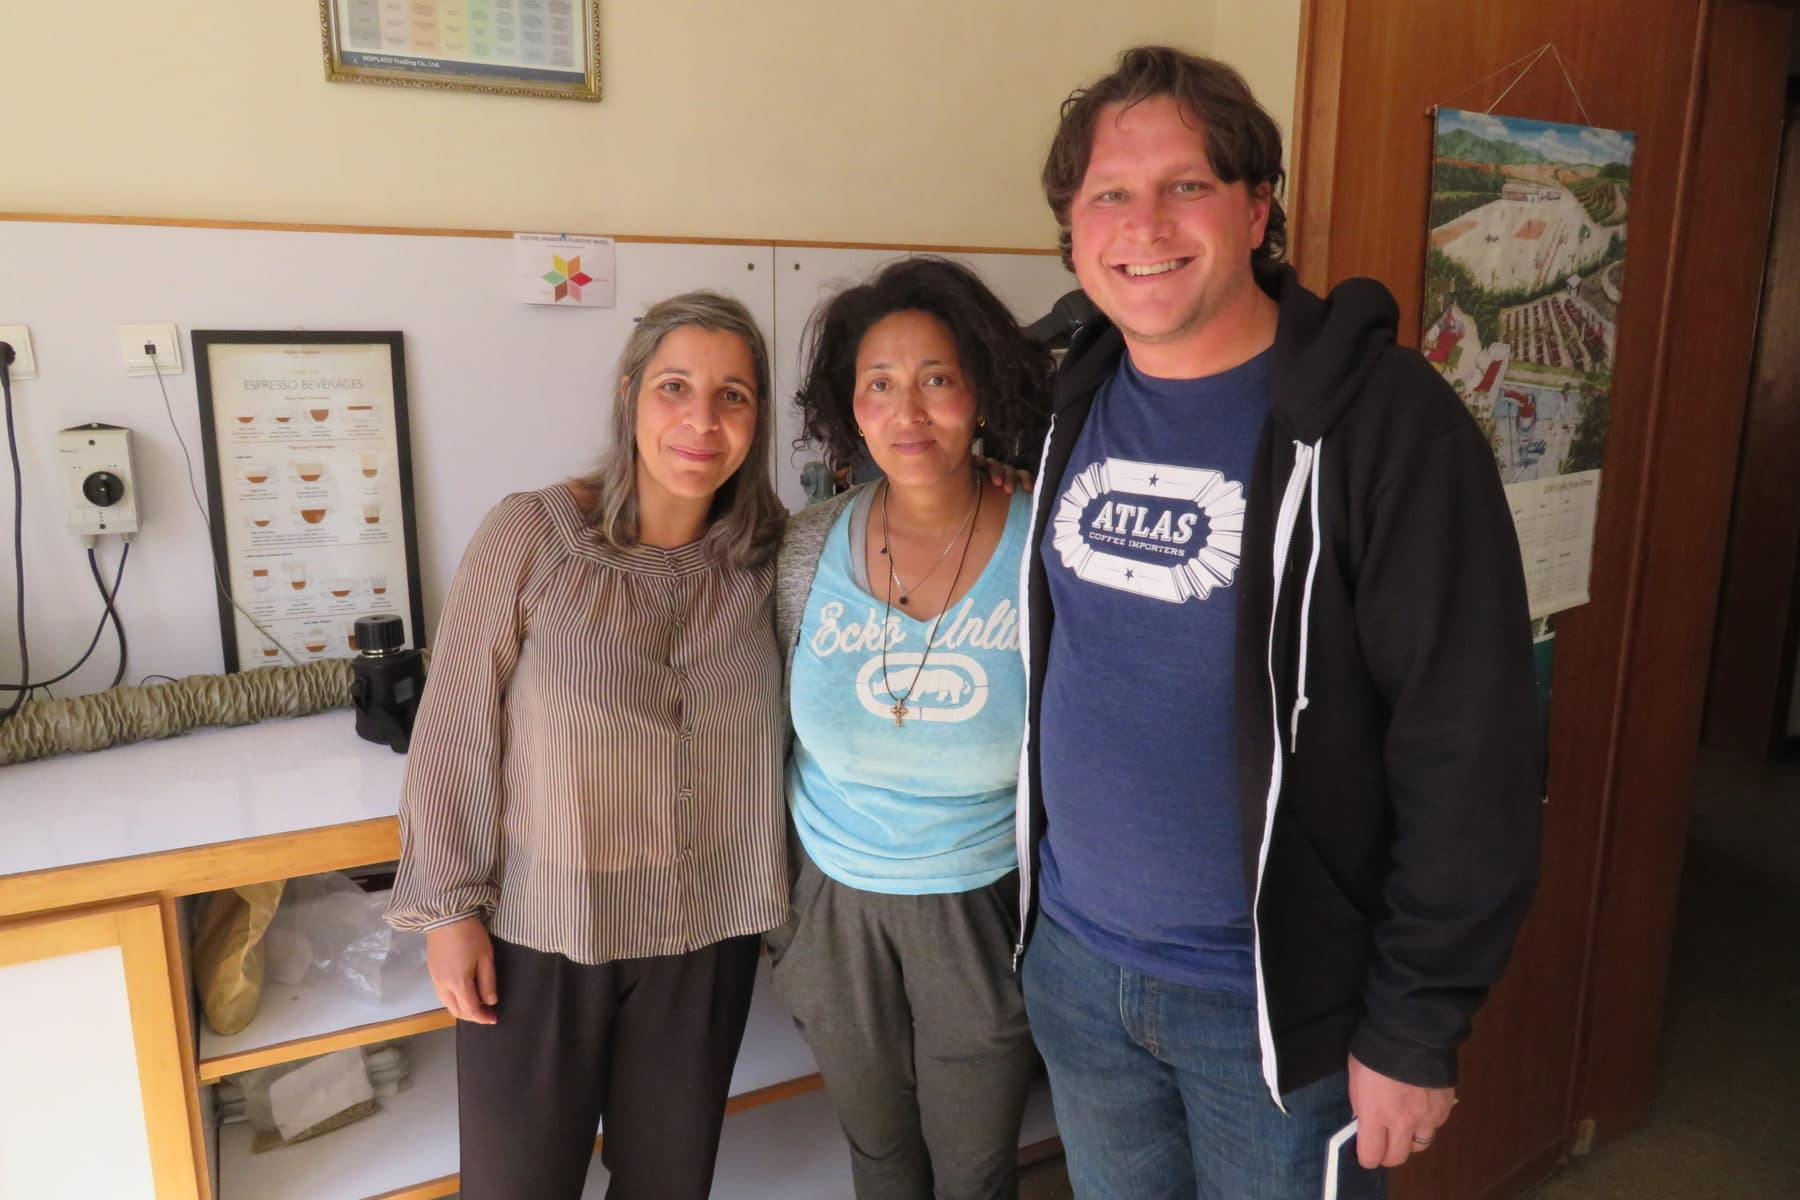 Blueprint member Mike Marquard poses with Heleanna Georgalis and Hana Kassahun Biligin of Moplaco, one of Blueprint's coffee sourcing partners in Ethiopia.